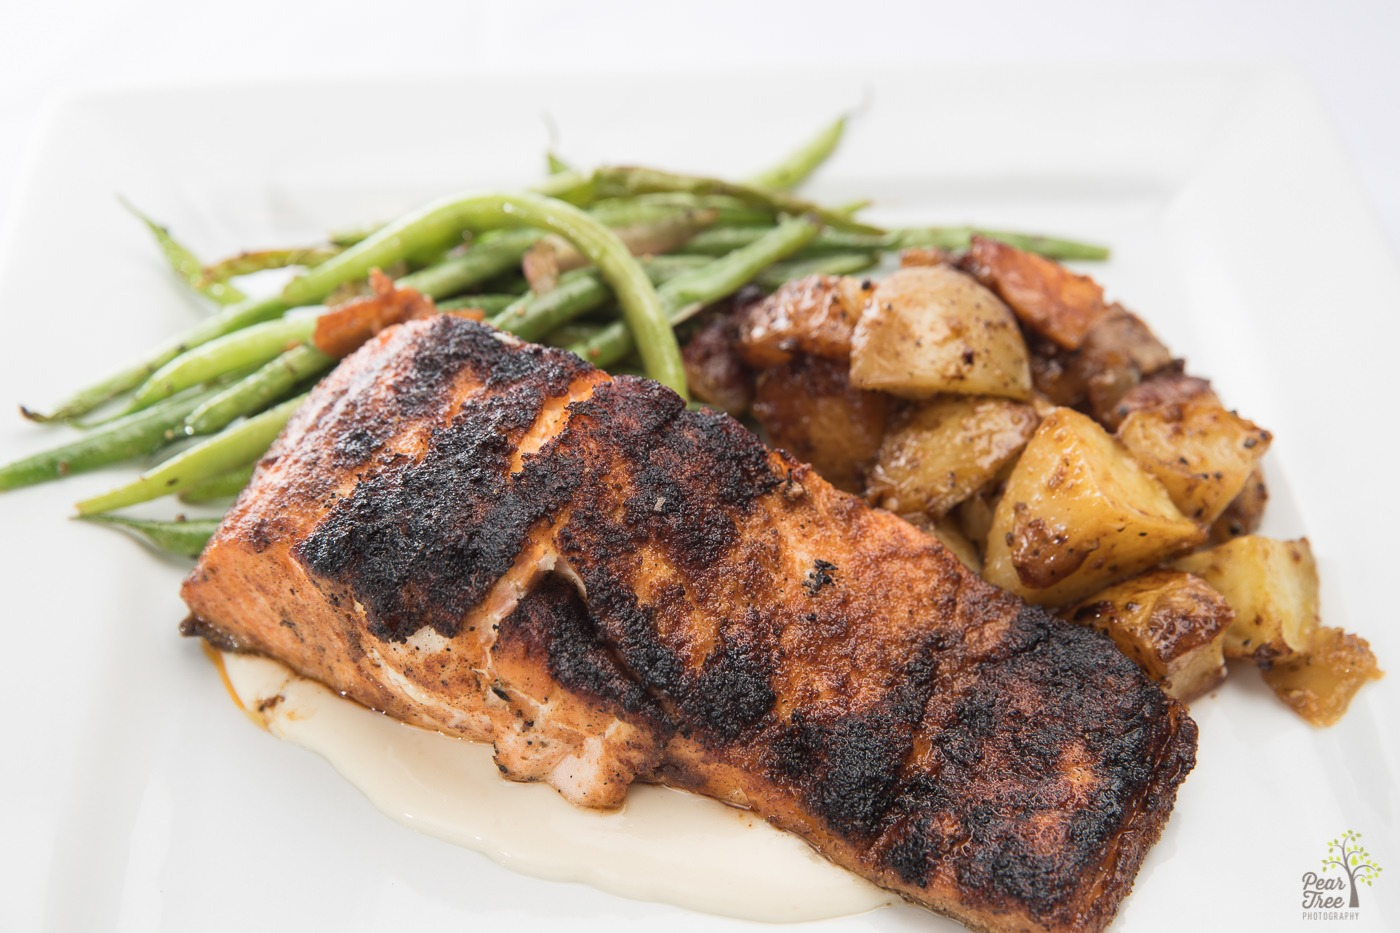 Baked cajun salmon served with fresh green beans and roasted potatoes catered by Divine Taste of Heaven.